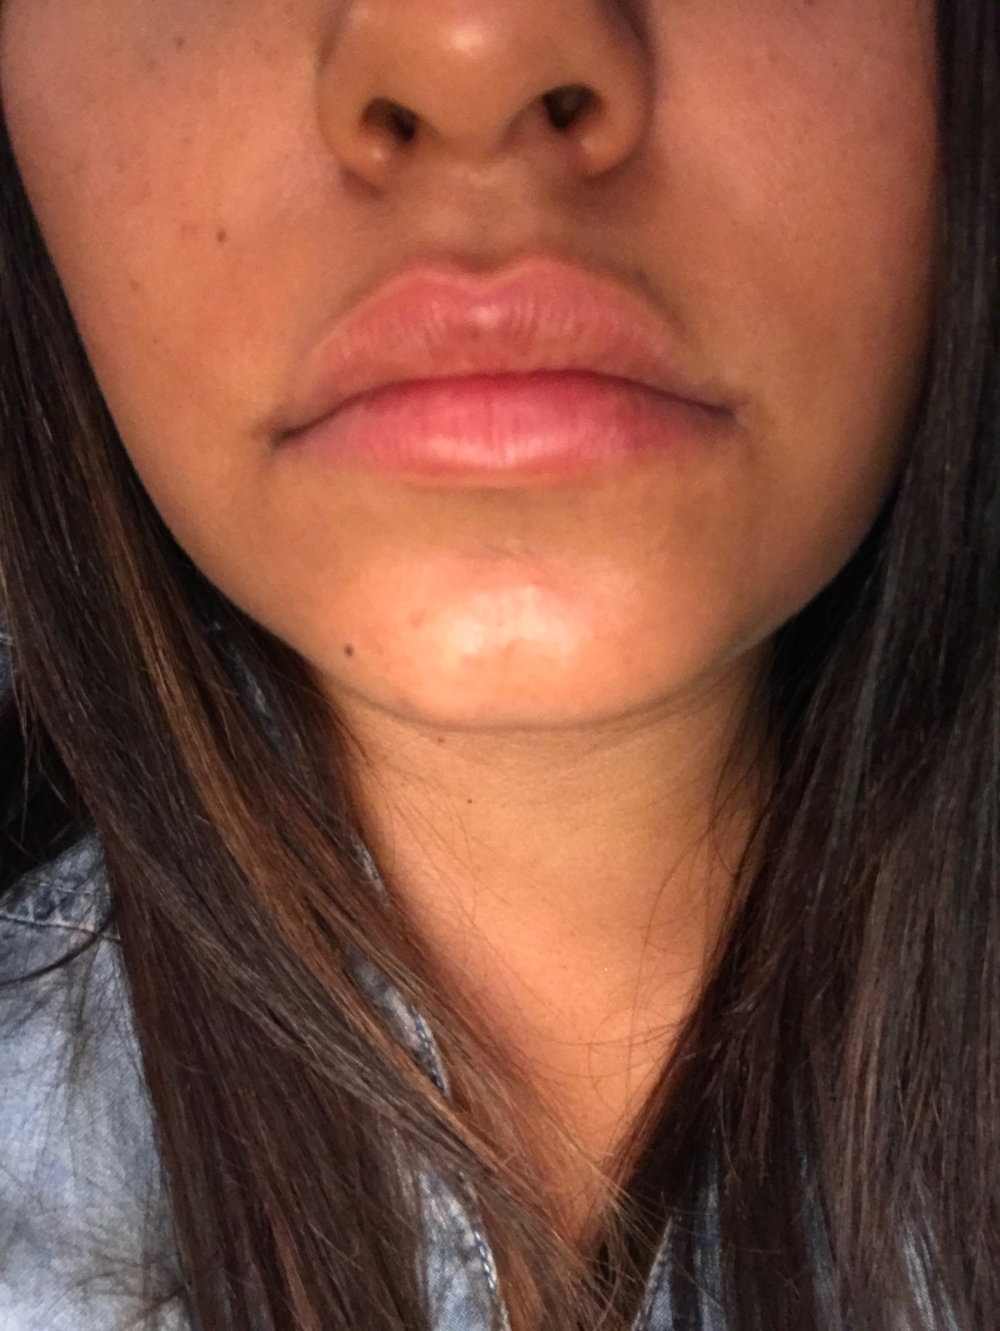 Richelle-Hedlund-Lip-Procedure-Review-Before-After-Puckers-Pumps-Blog8.jpg